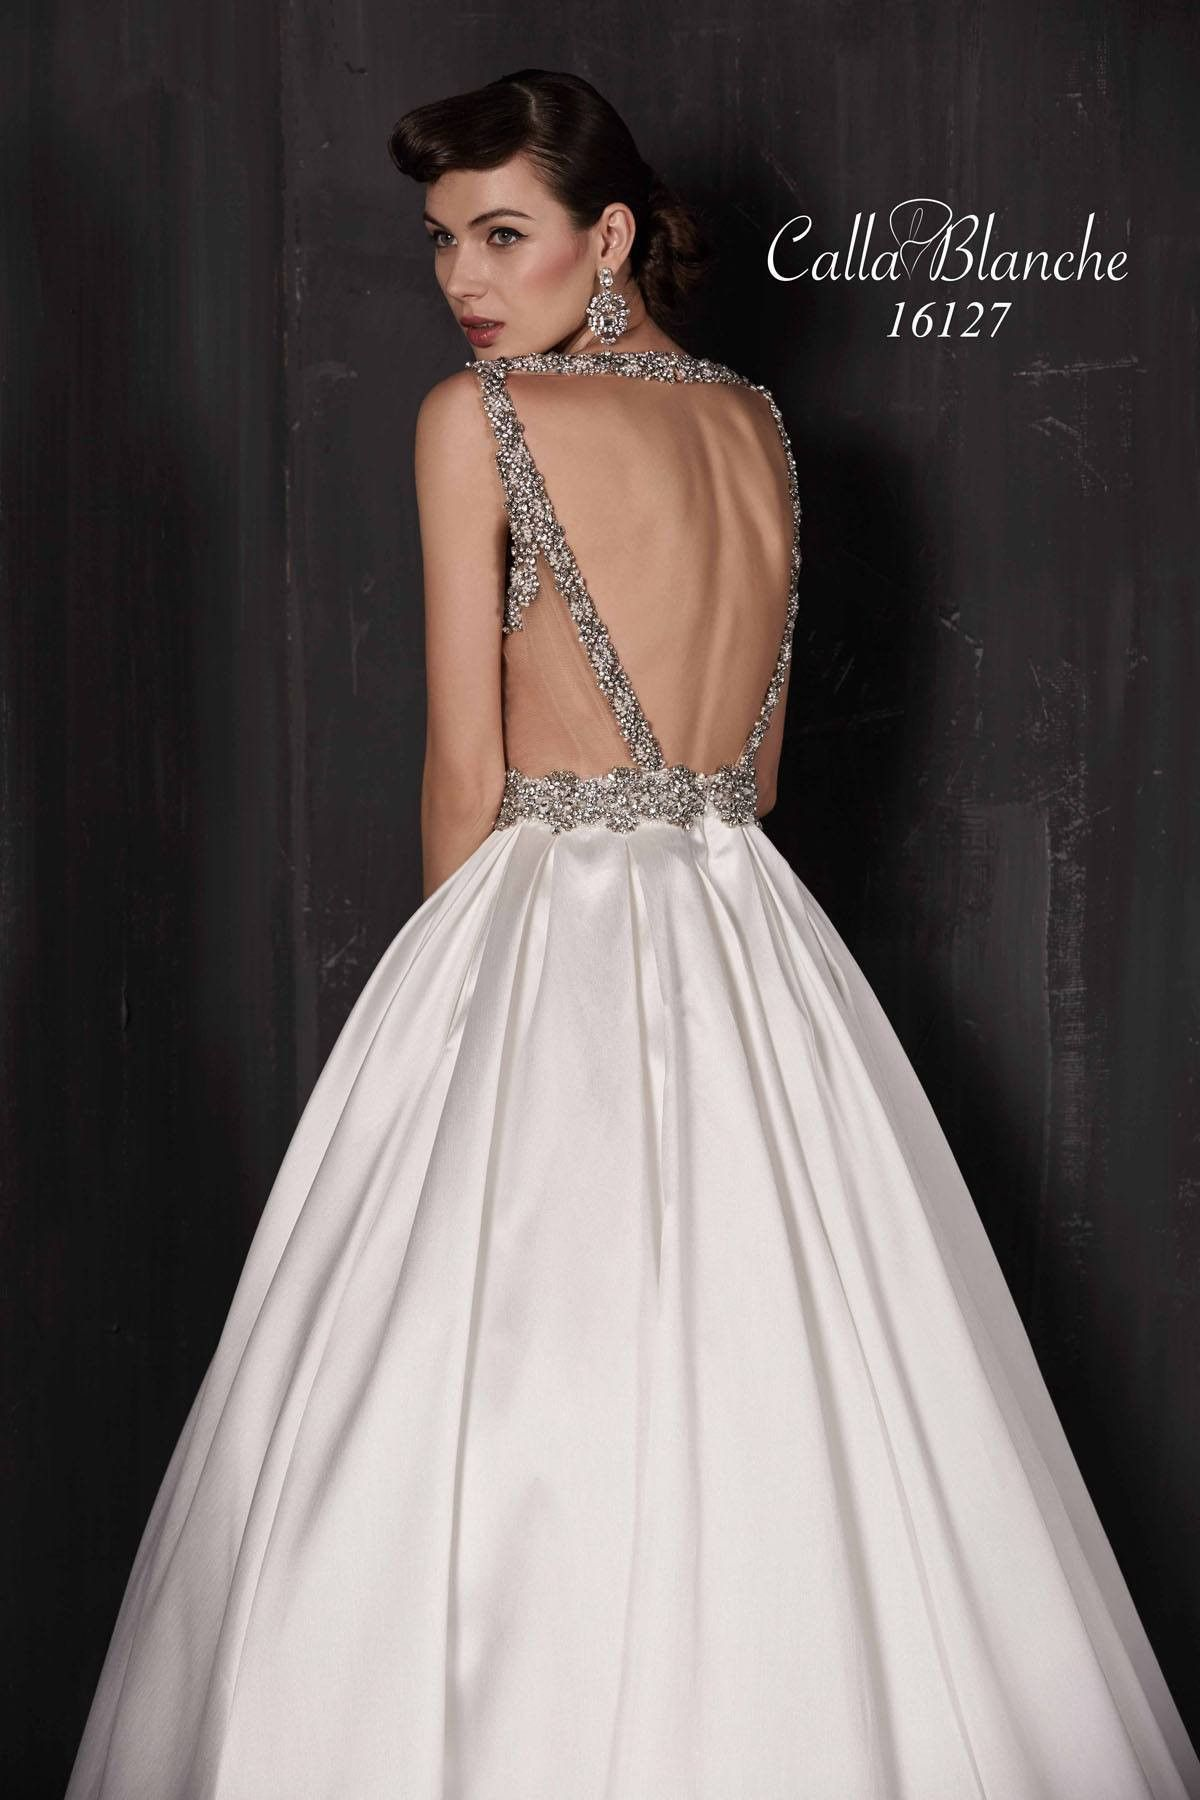 10c9c10e45ce7 Paulette by Calla Blanche 16127 Low Back Ball Gown Wedding Dress ...